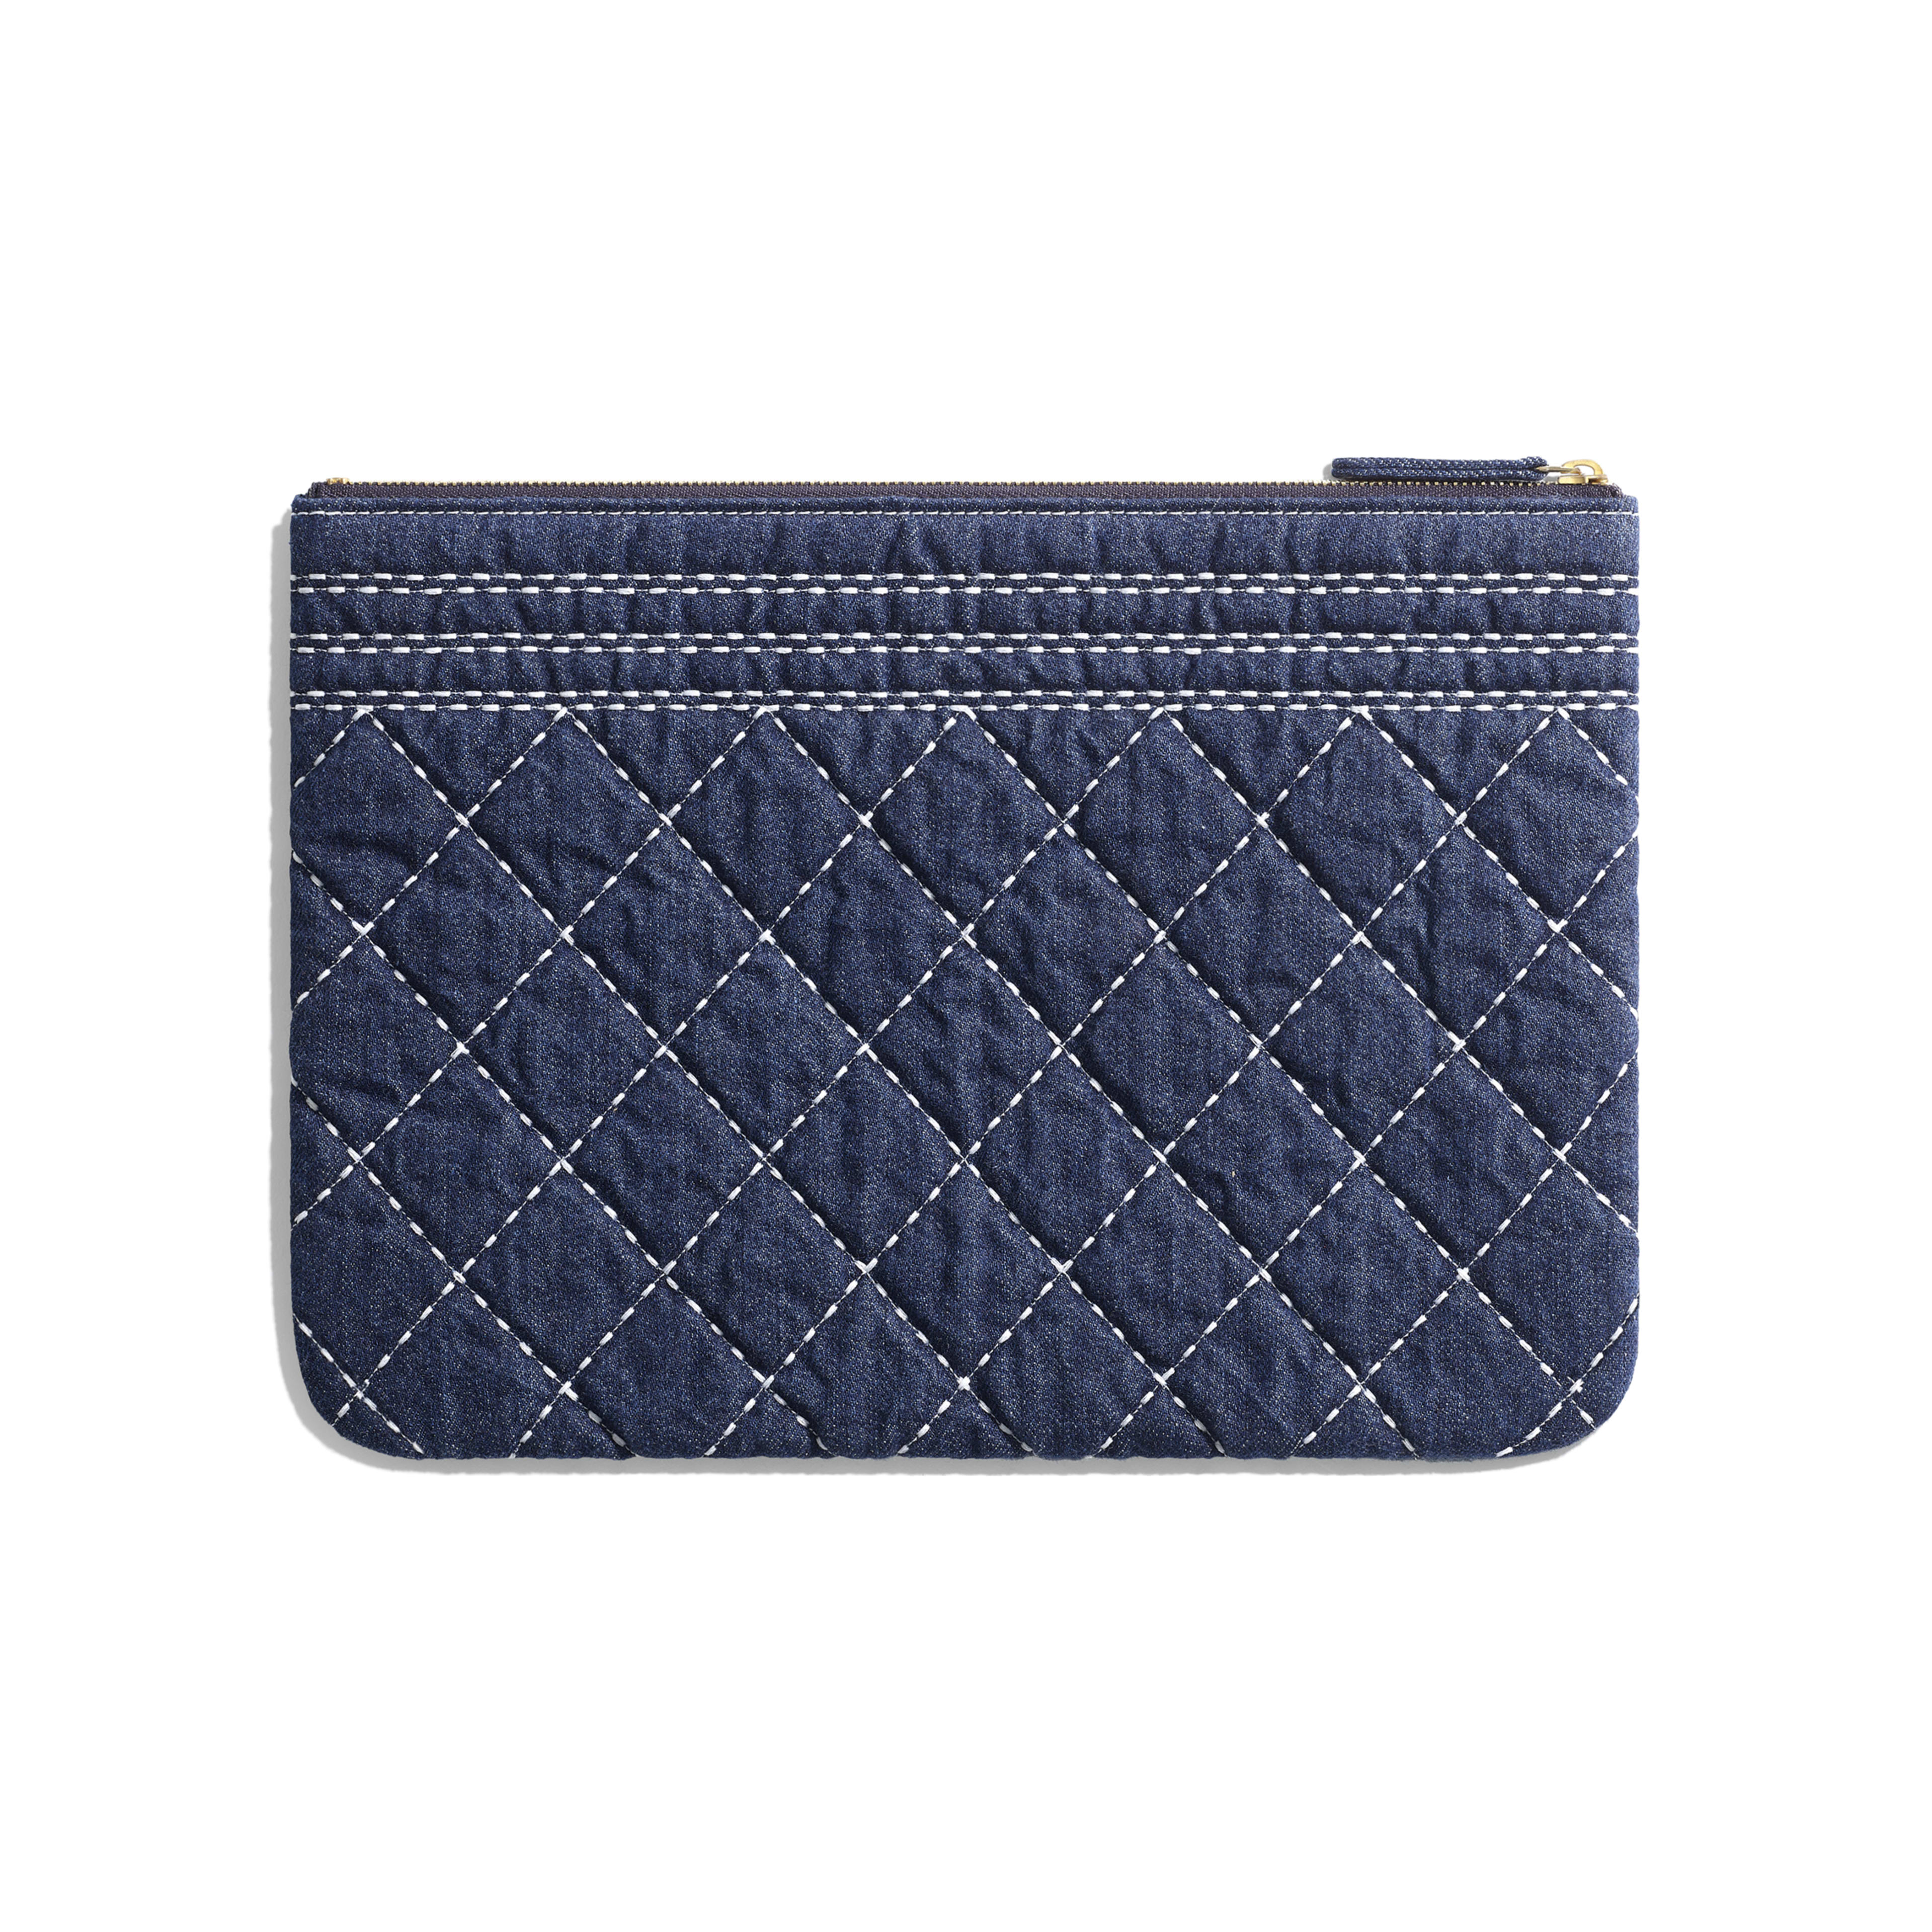 Pouch - Blue - Denim & Gold Metal - Alternative view - see full sized version